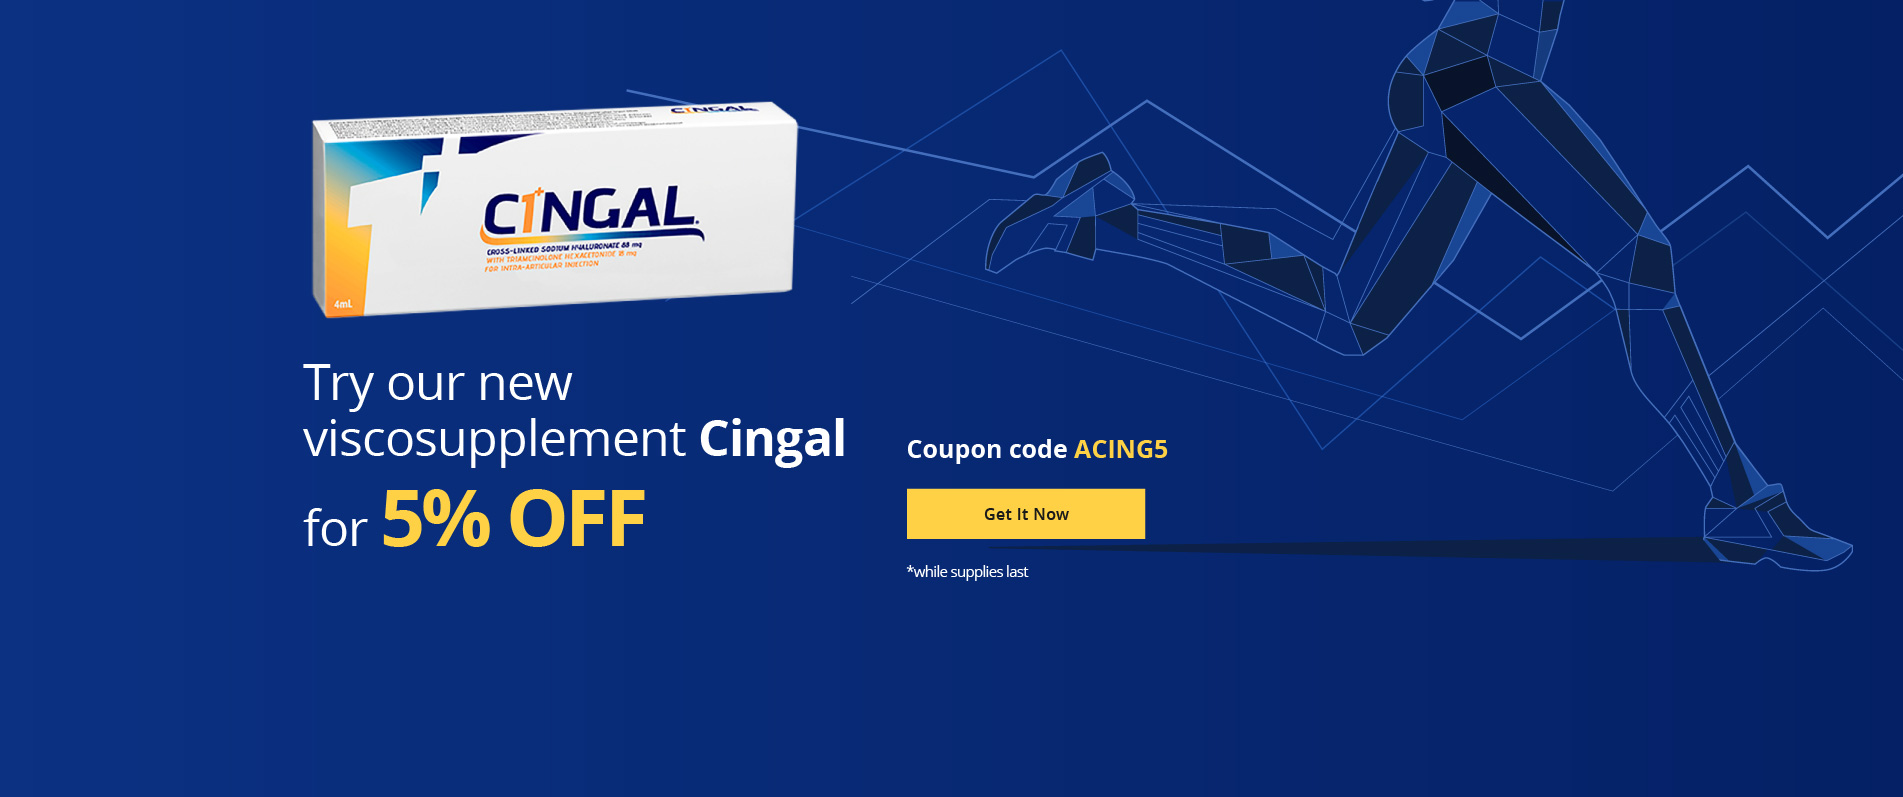 Try our new viscosupplement Cingal for 5% off